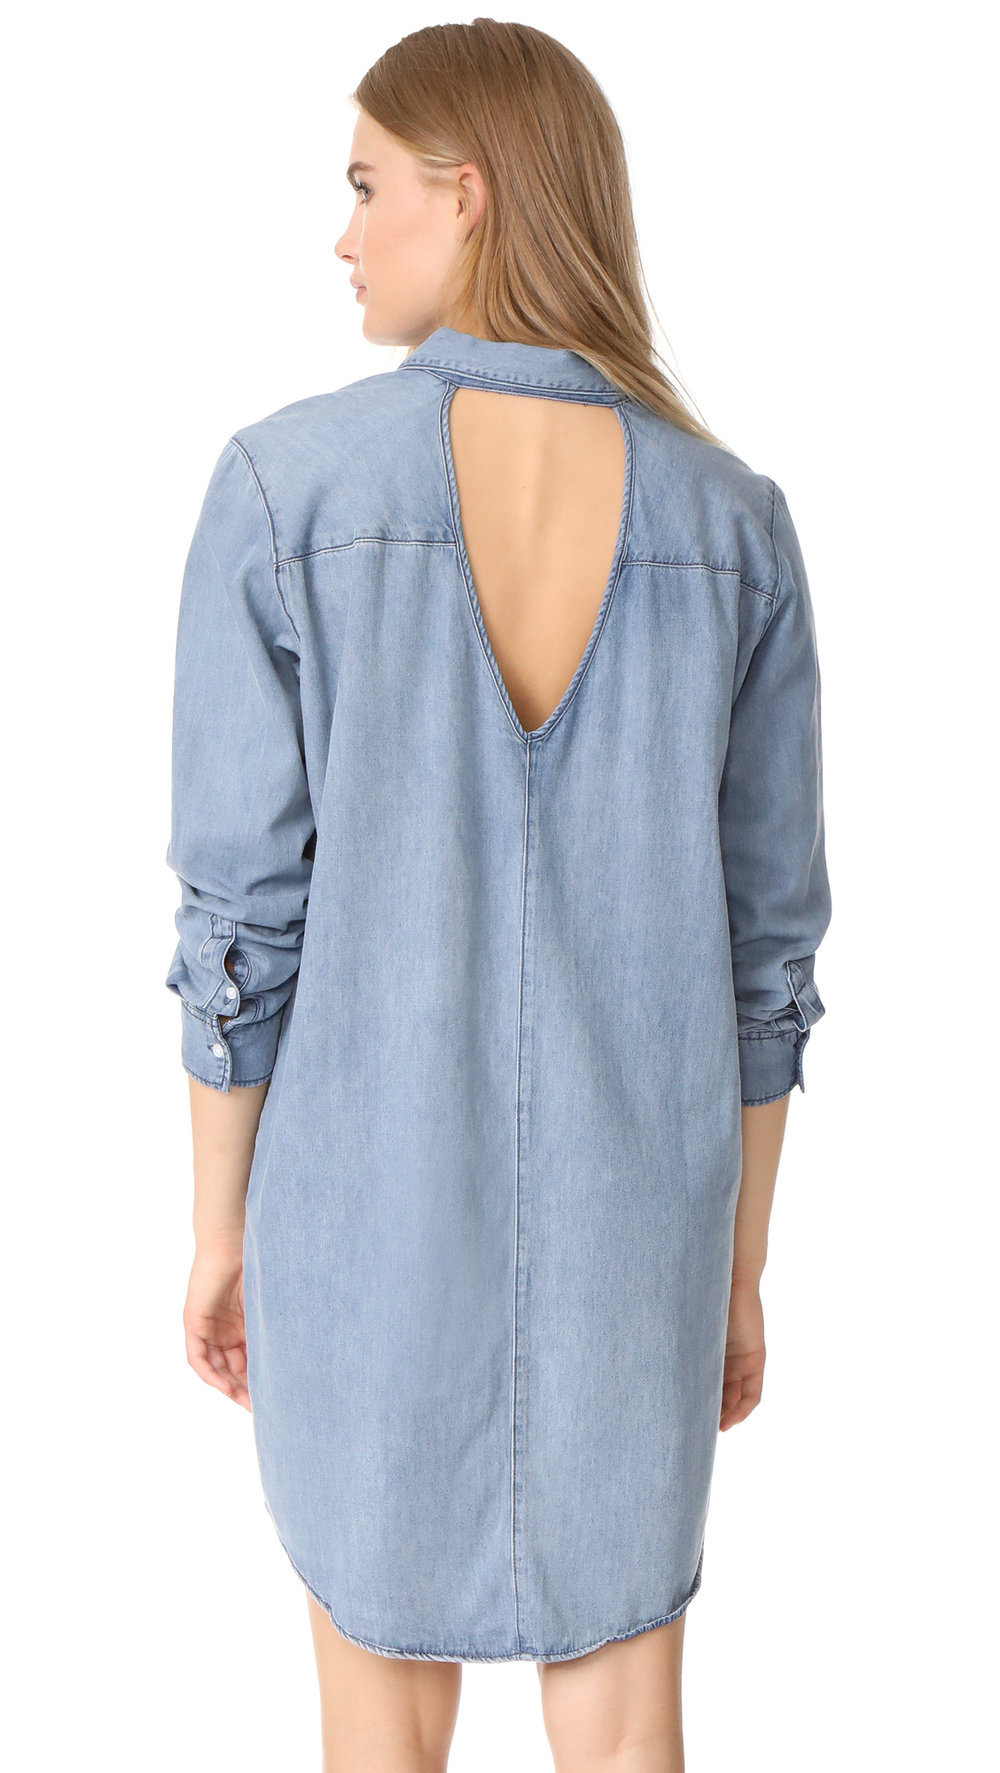 THIS ONE IS A MUST, THIS DENIM DRESS WILL GET YOU THROUGH ANY OUTFIT FOR A LAZY DAY.